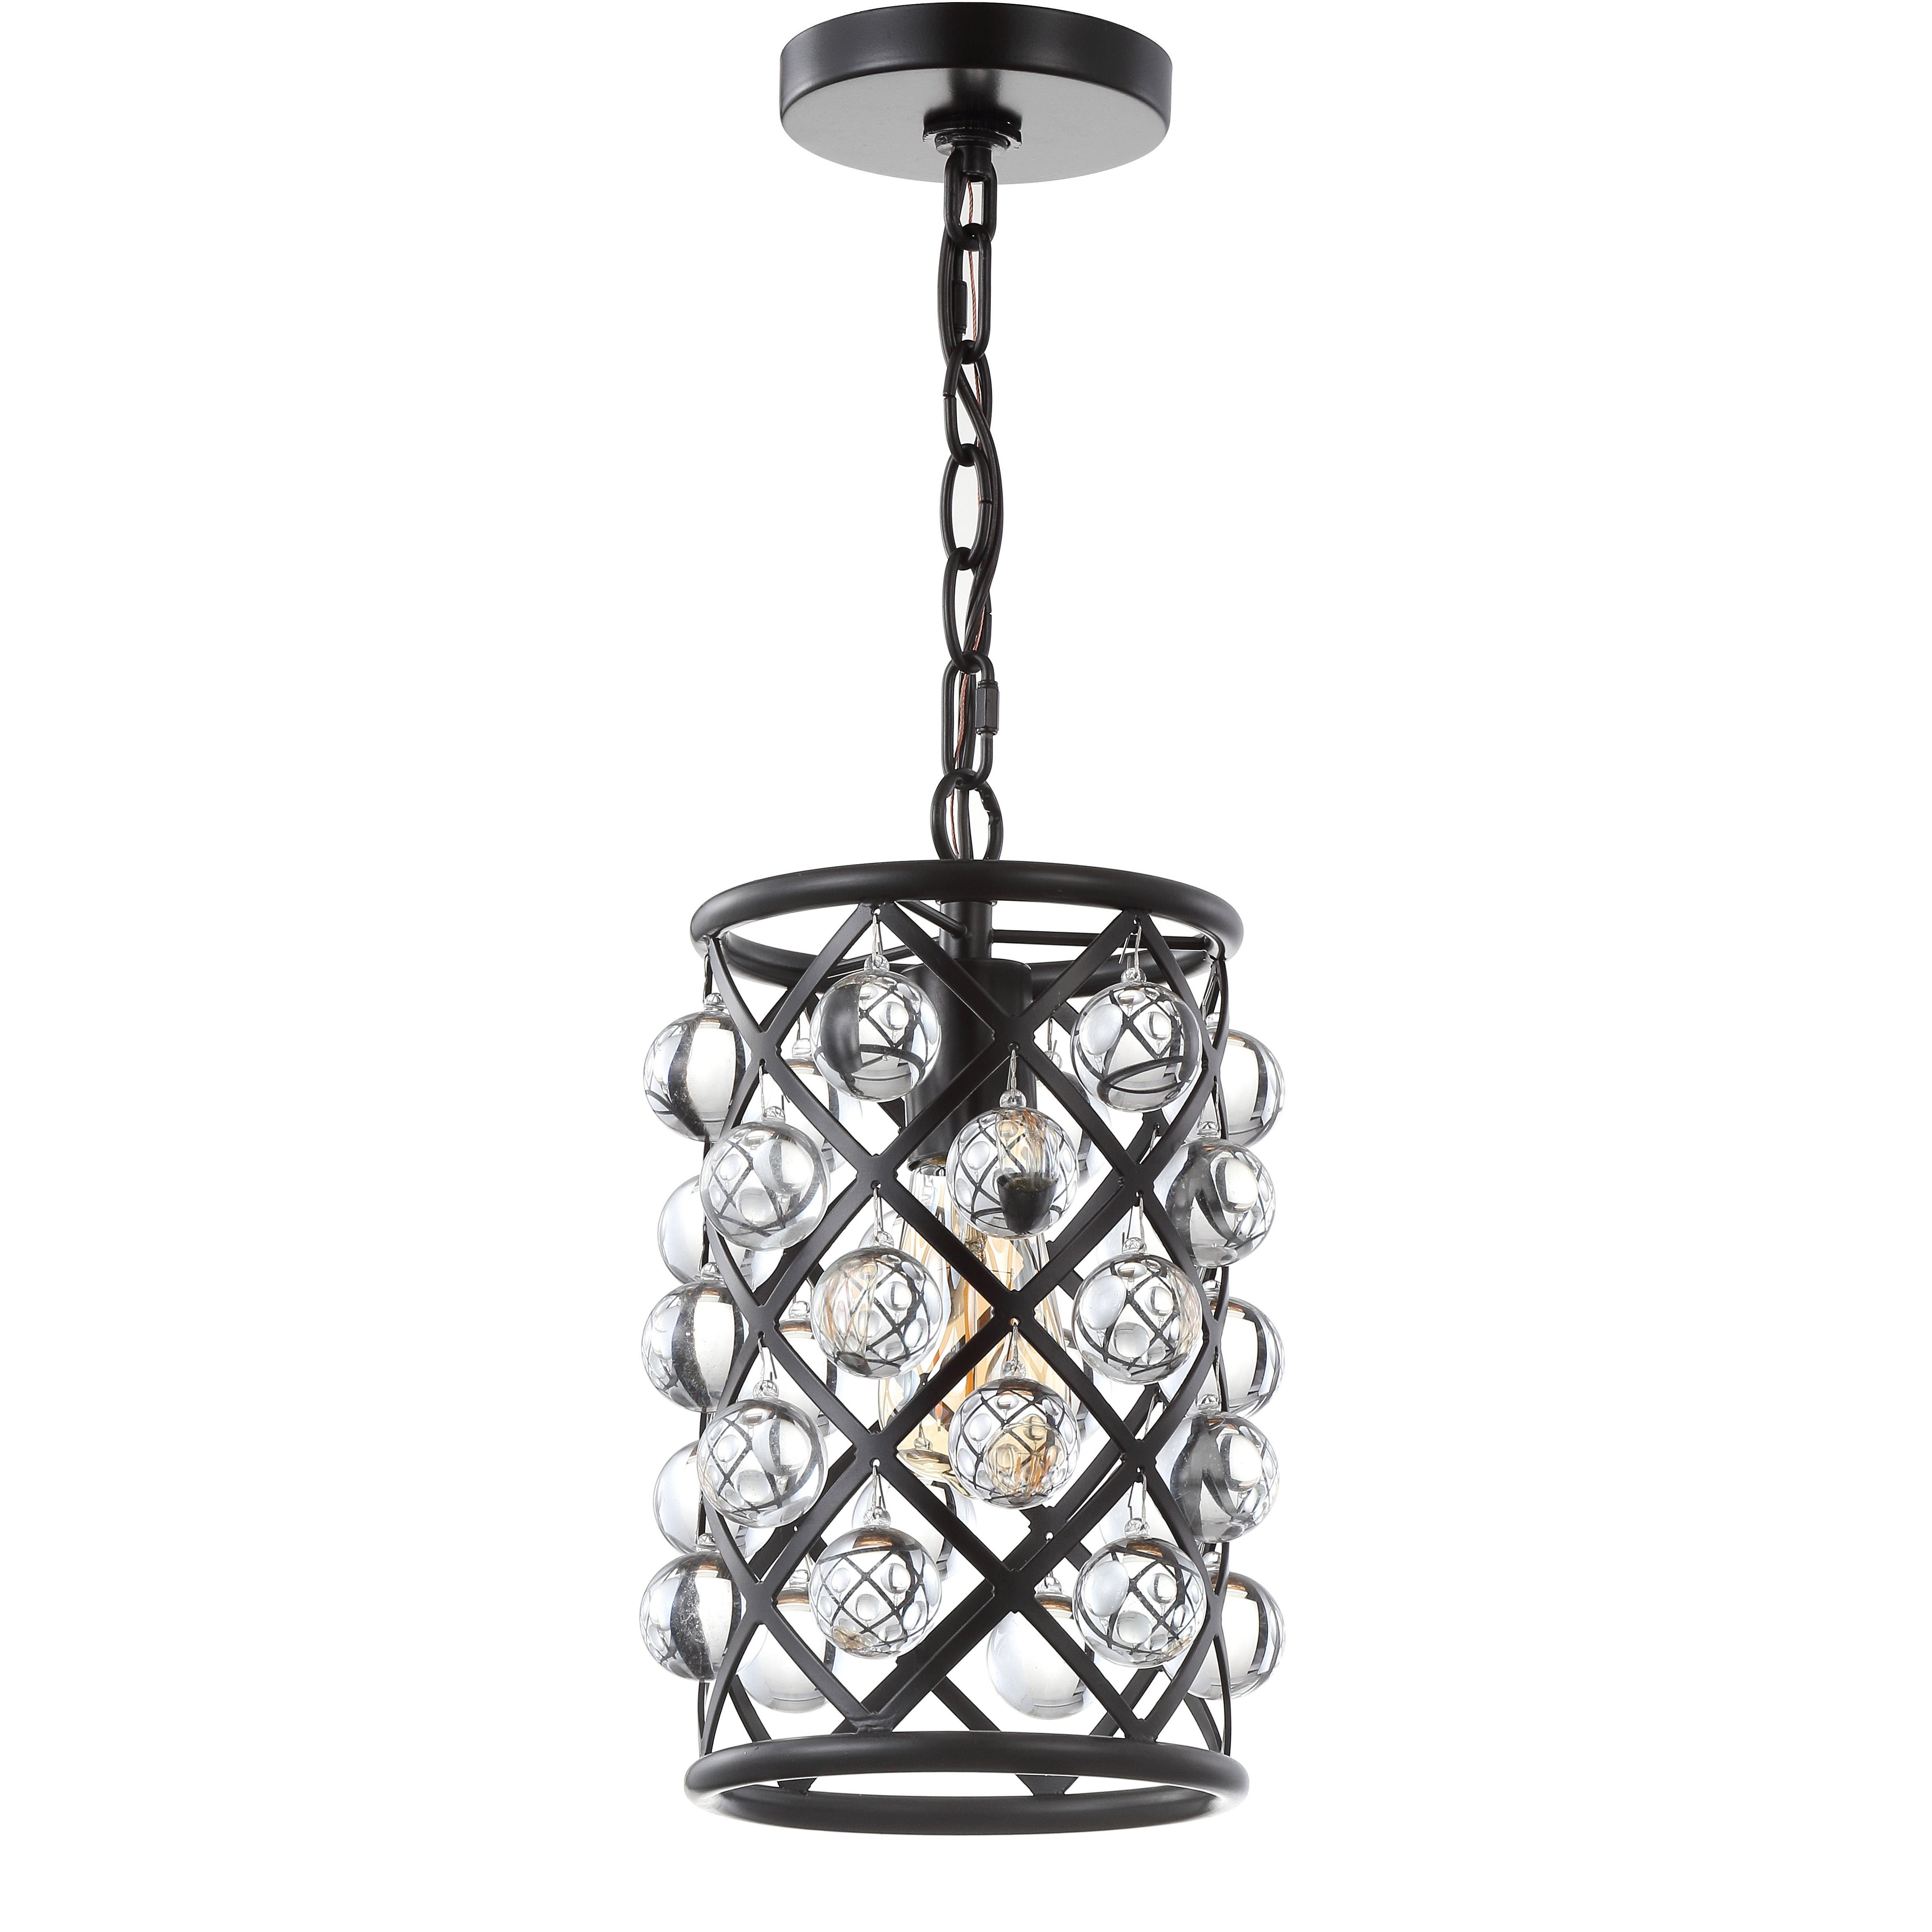 Chesler 1 Light Cylinder Pendant Throughout Well Liked Hurst 1 Light Single Cylinder Pendants (View 5 of 20)